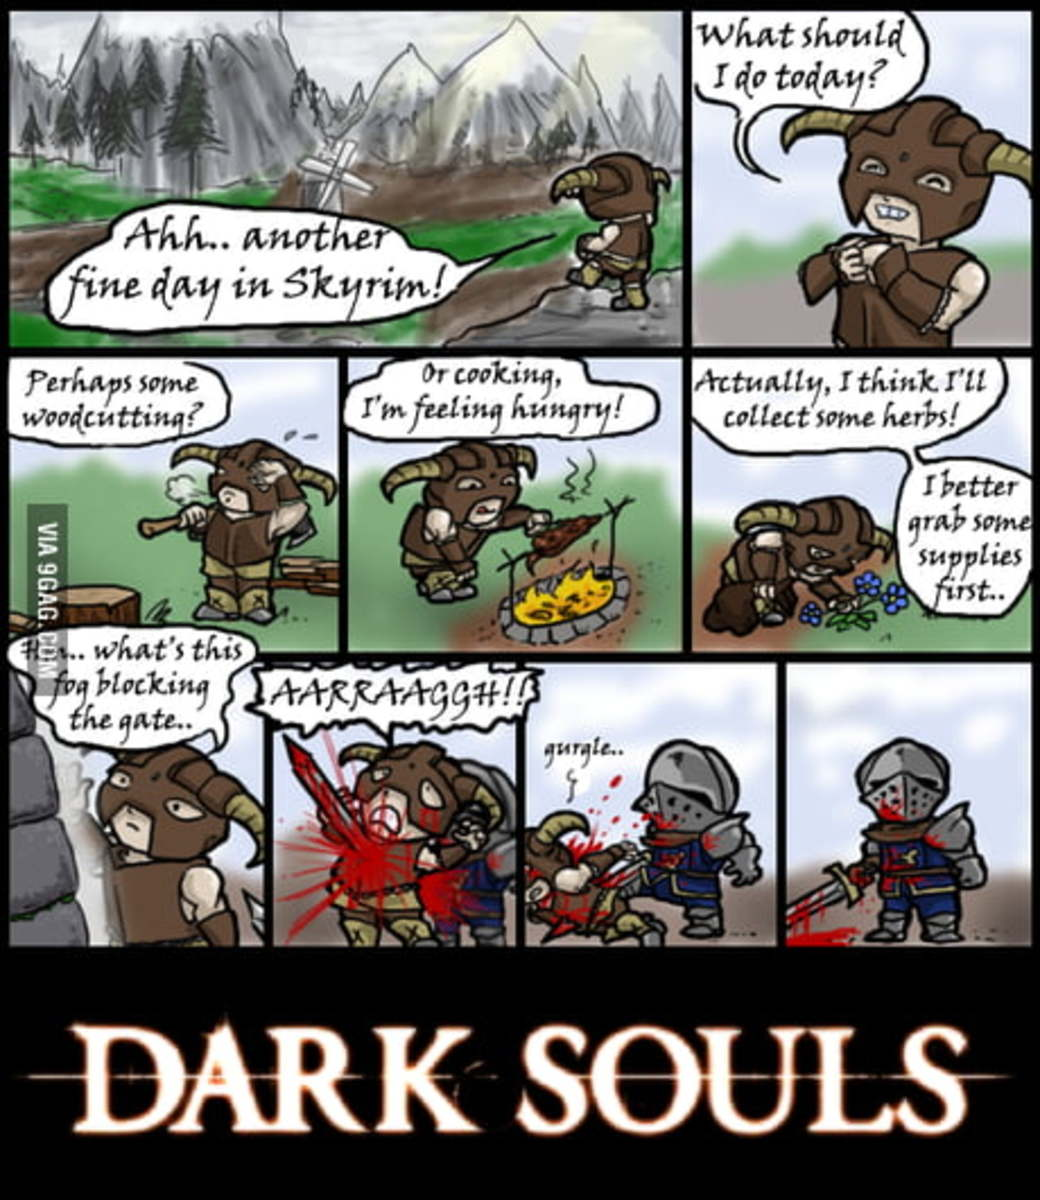 skyrim-is-an-overrated-crap-game